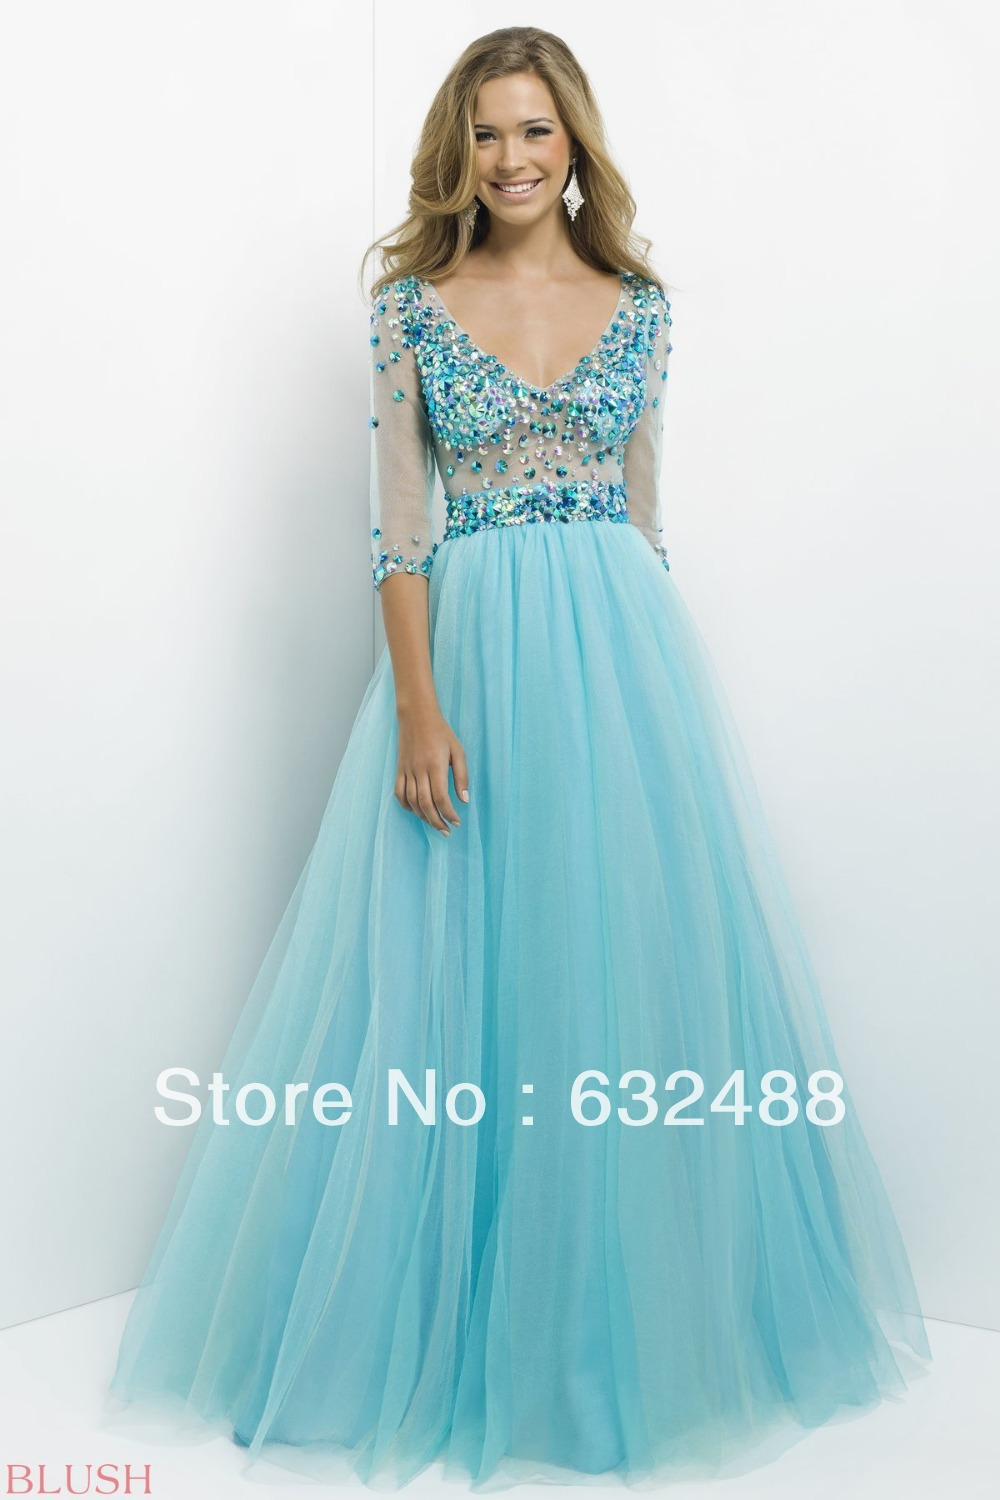 Places that will buy prom dresses